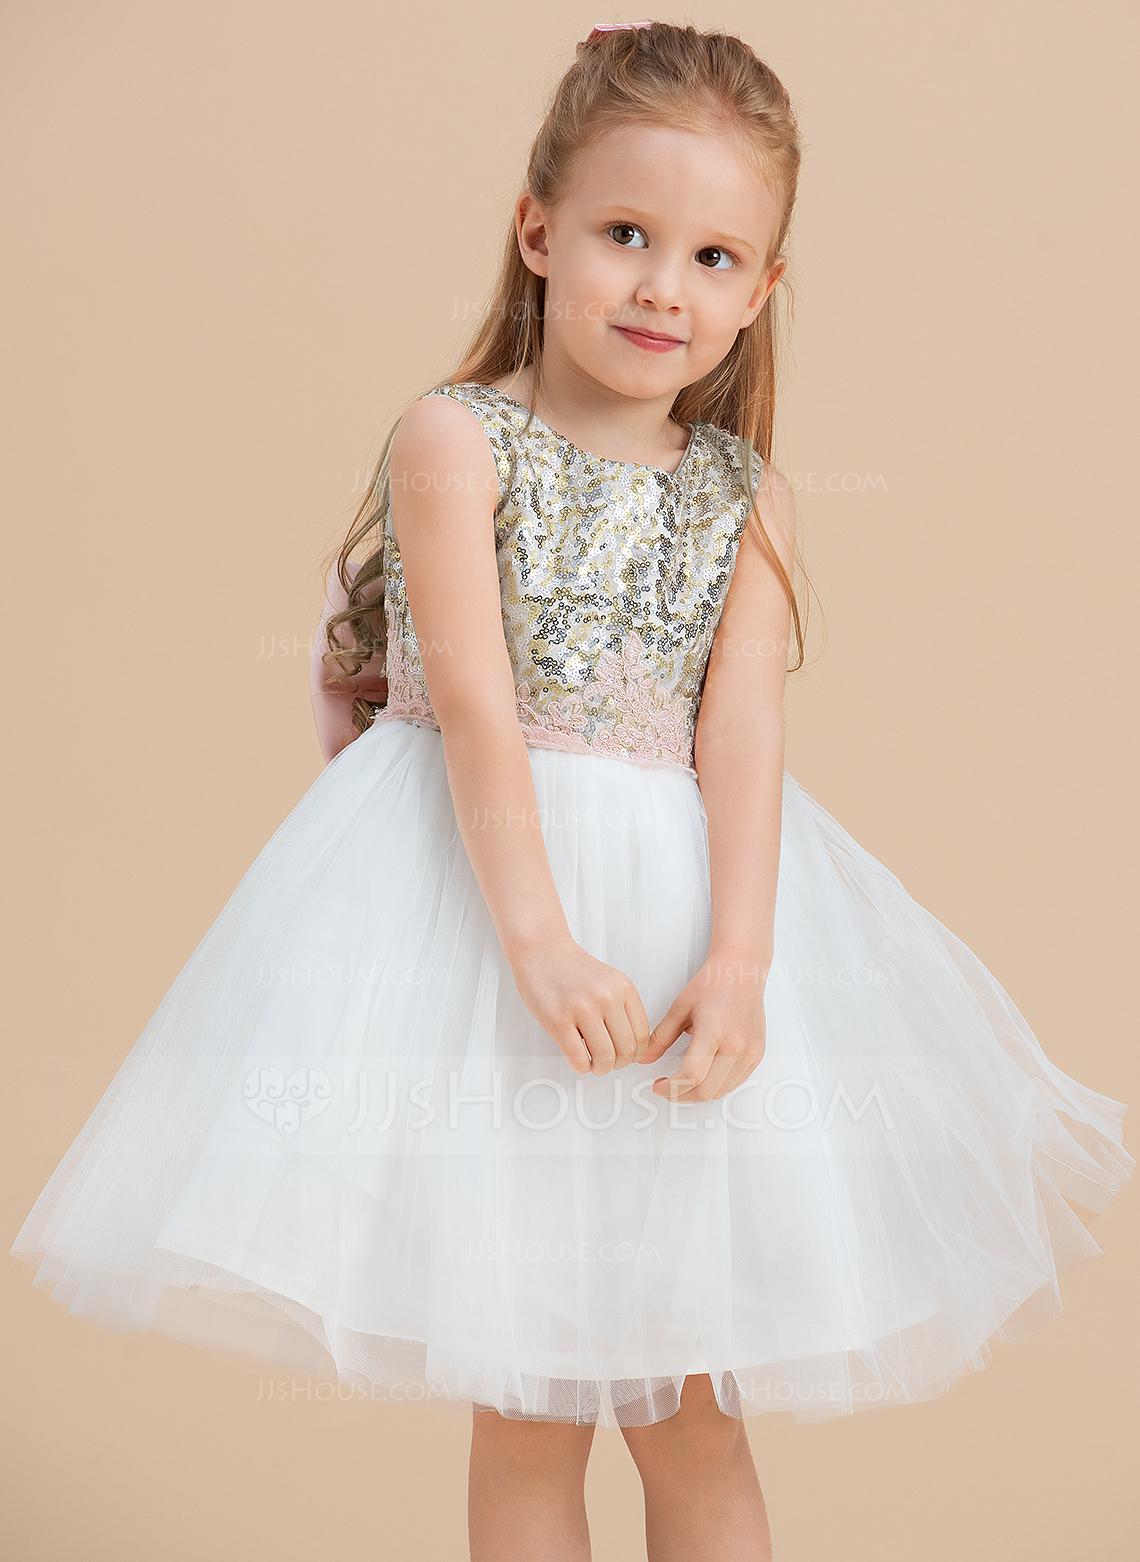 A-Line/Princess Knee-length Flower Girl Dress - Tulle/Sequined Sleeveless Scoop Neck With Sequins/Bow(s)